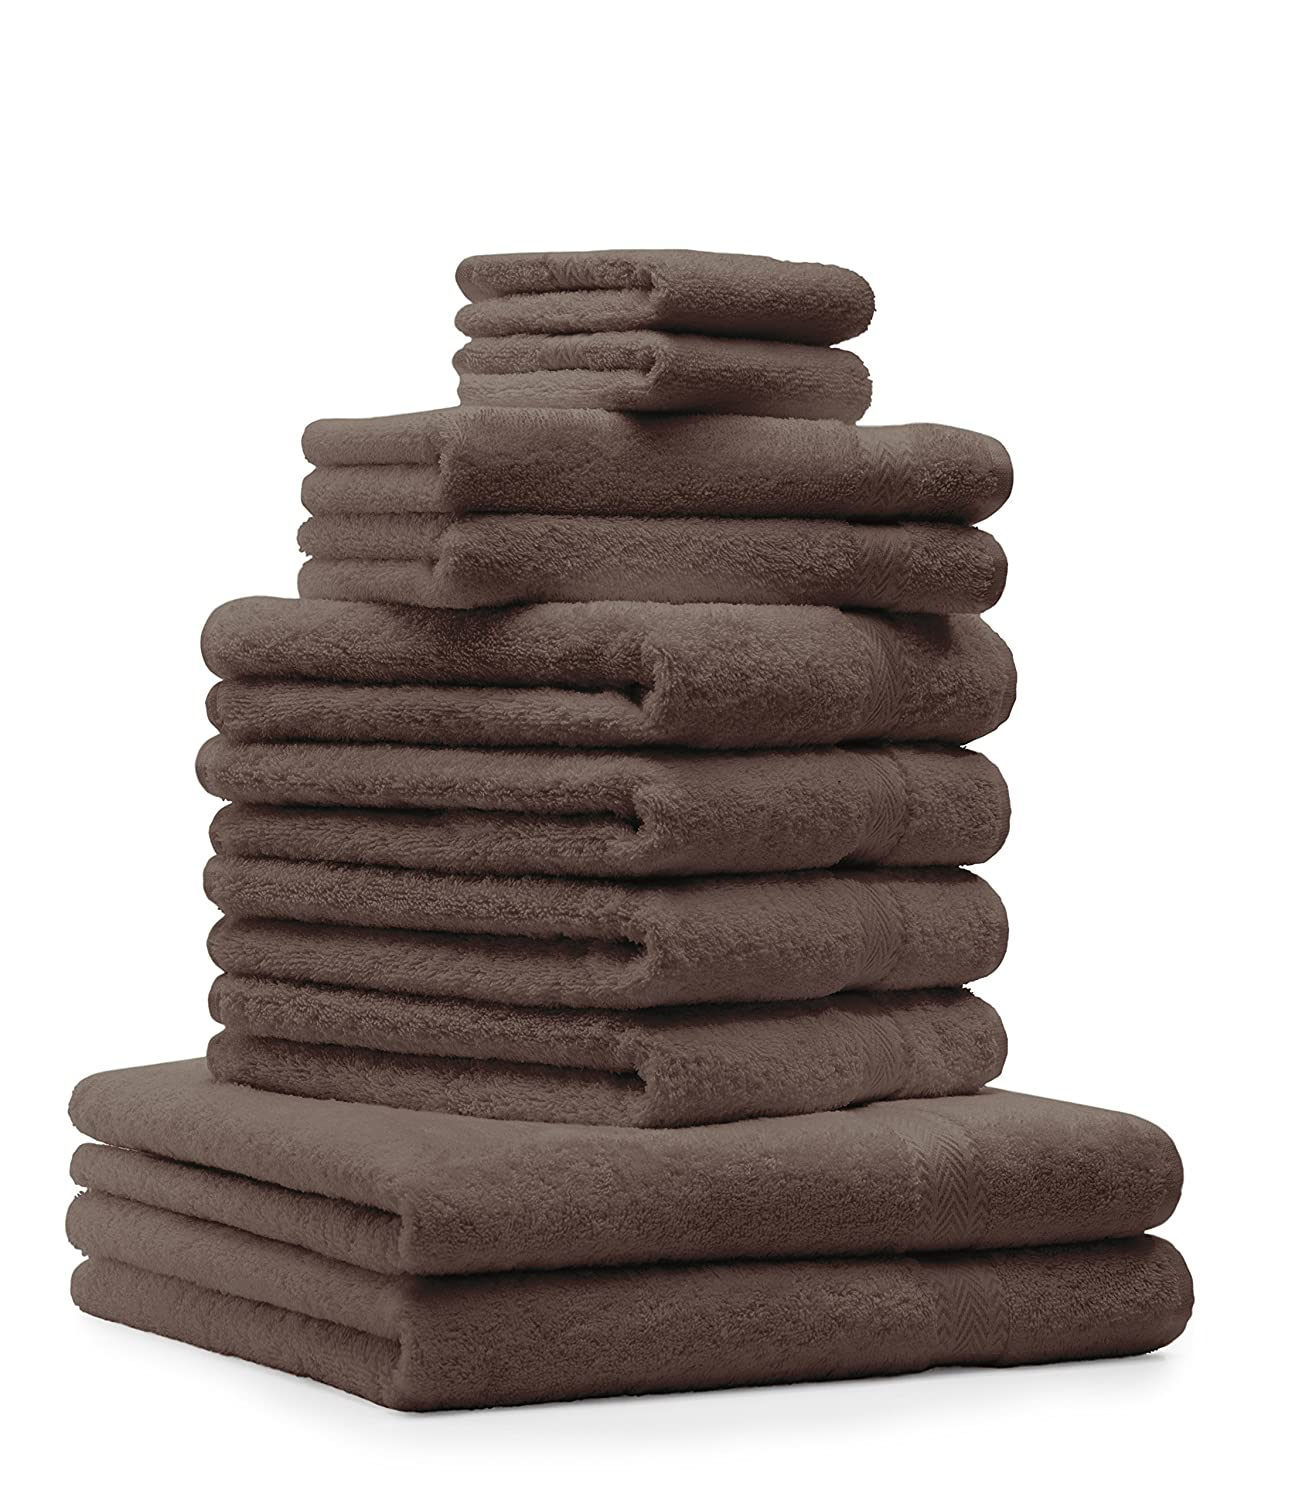 Betz 10-piece towel set in black, 2 bath towels, 4 hand towels, 2 guest towels, 2 wash mitts, 100% cotton, premium bath towel, hand towel, premium hand towel set A Touch of Energy in black.